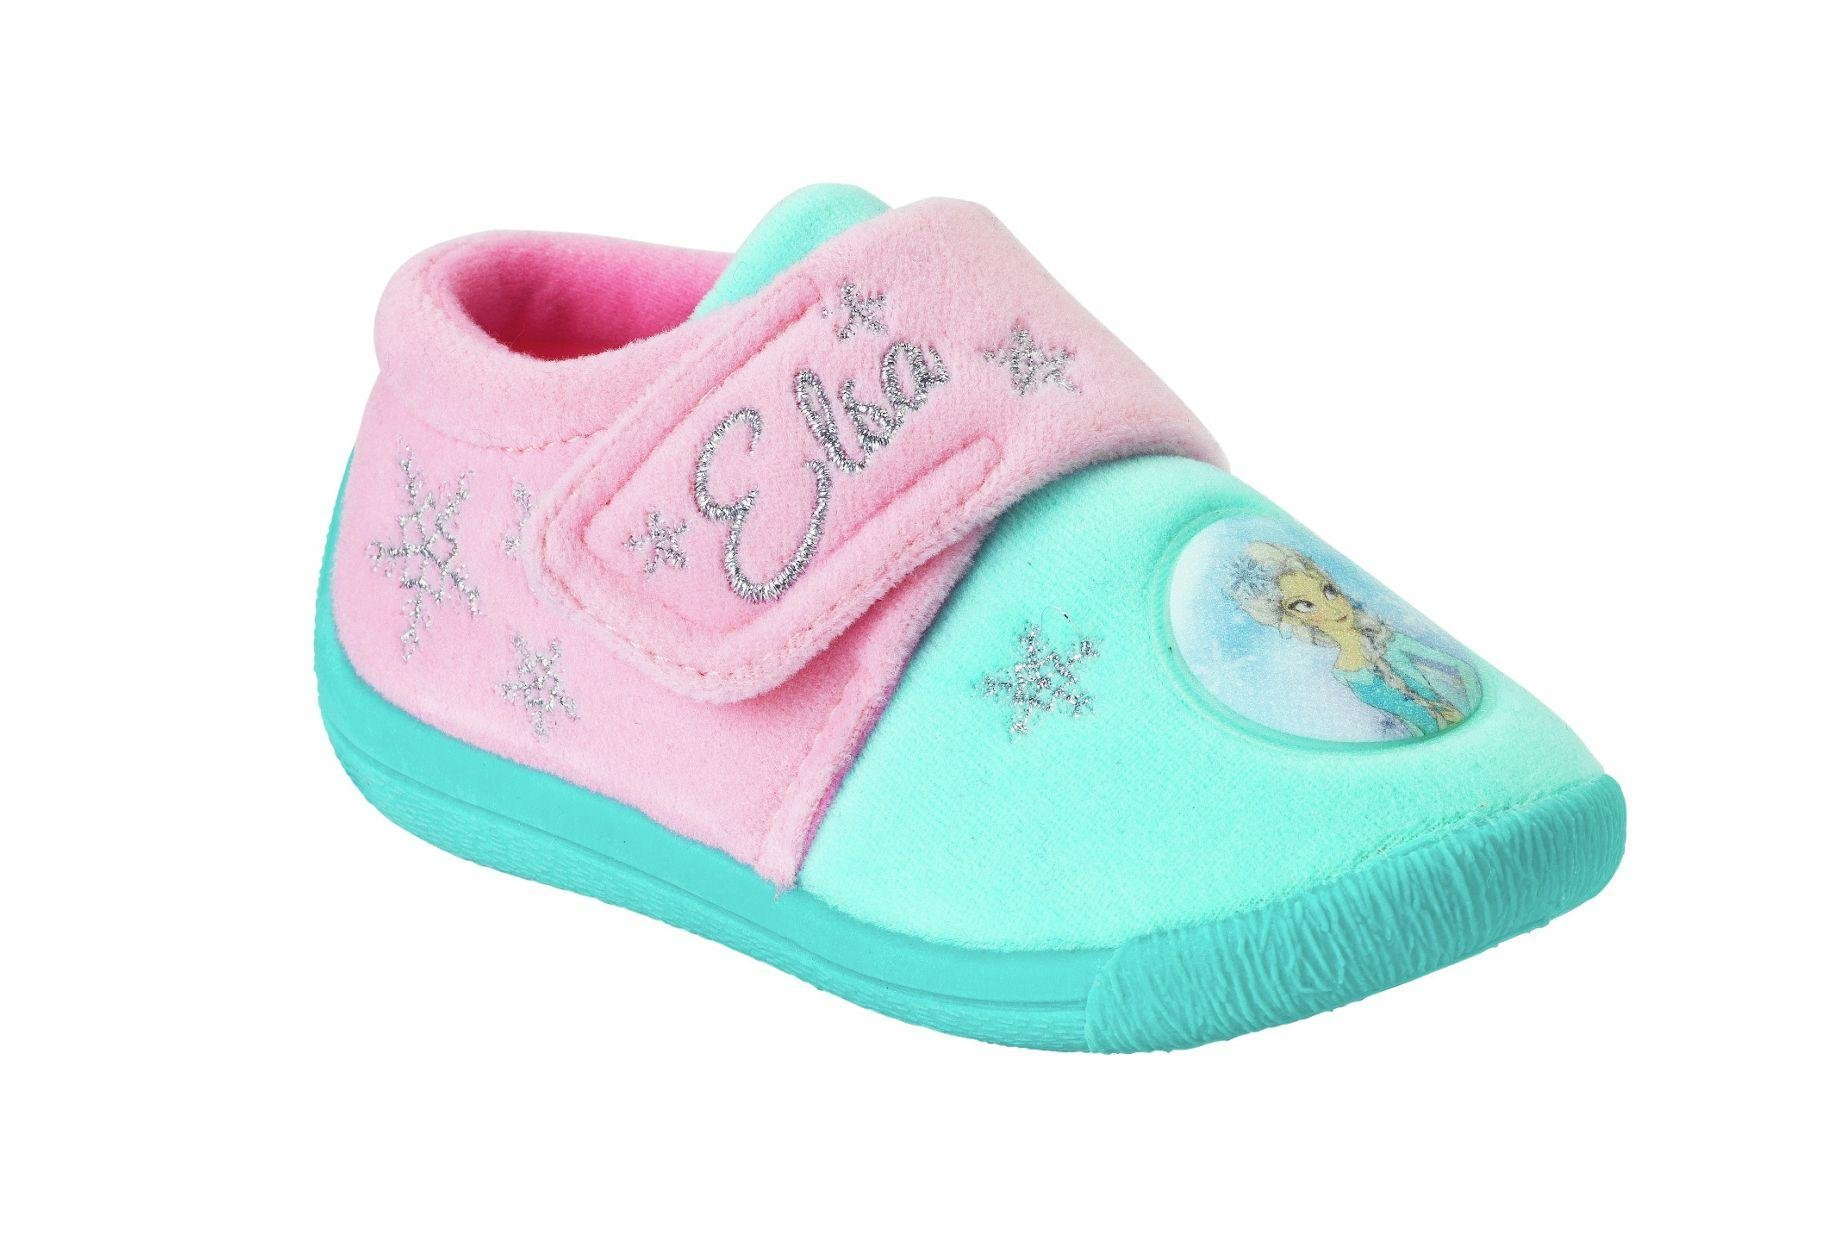 Image of Disney - Frozen - Toddle Slippers - Size 11